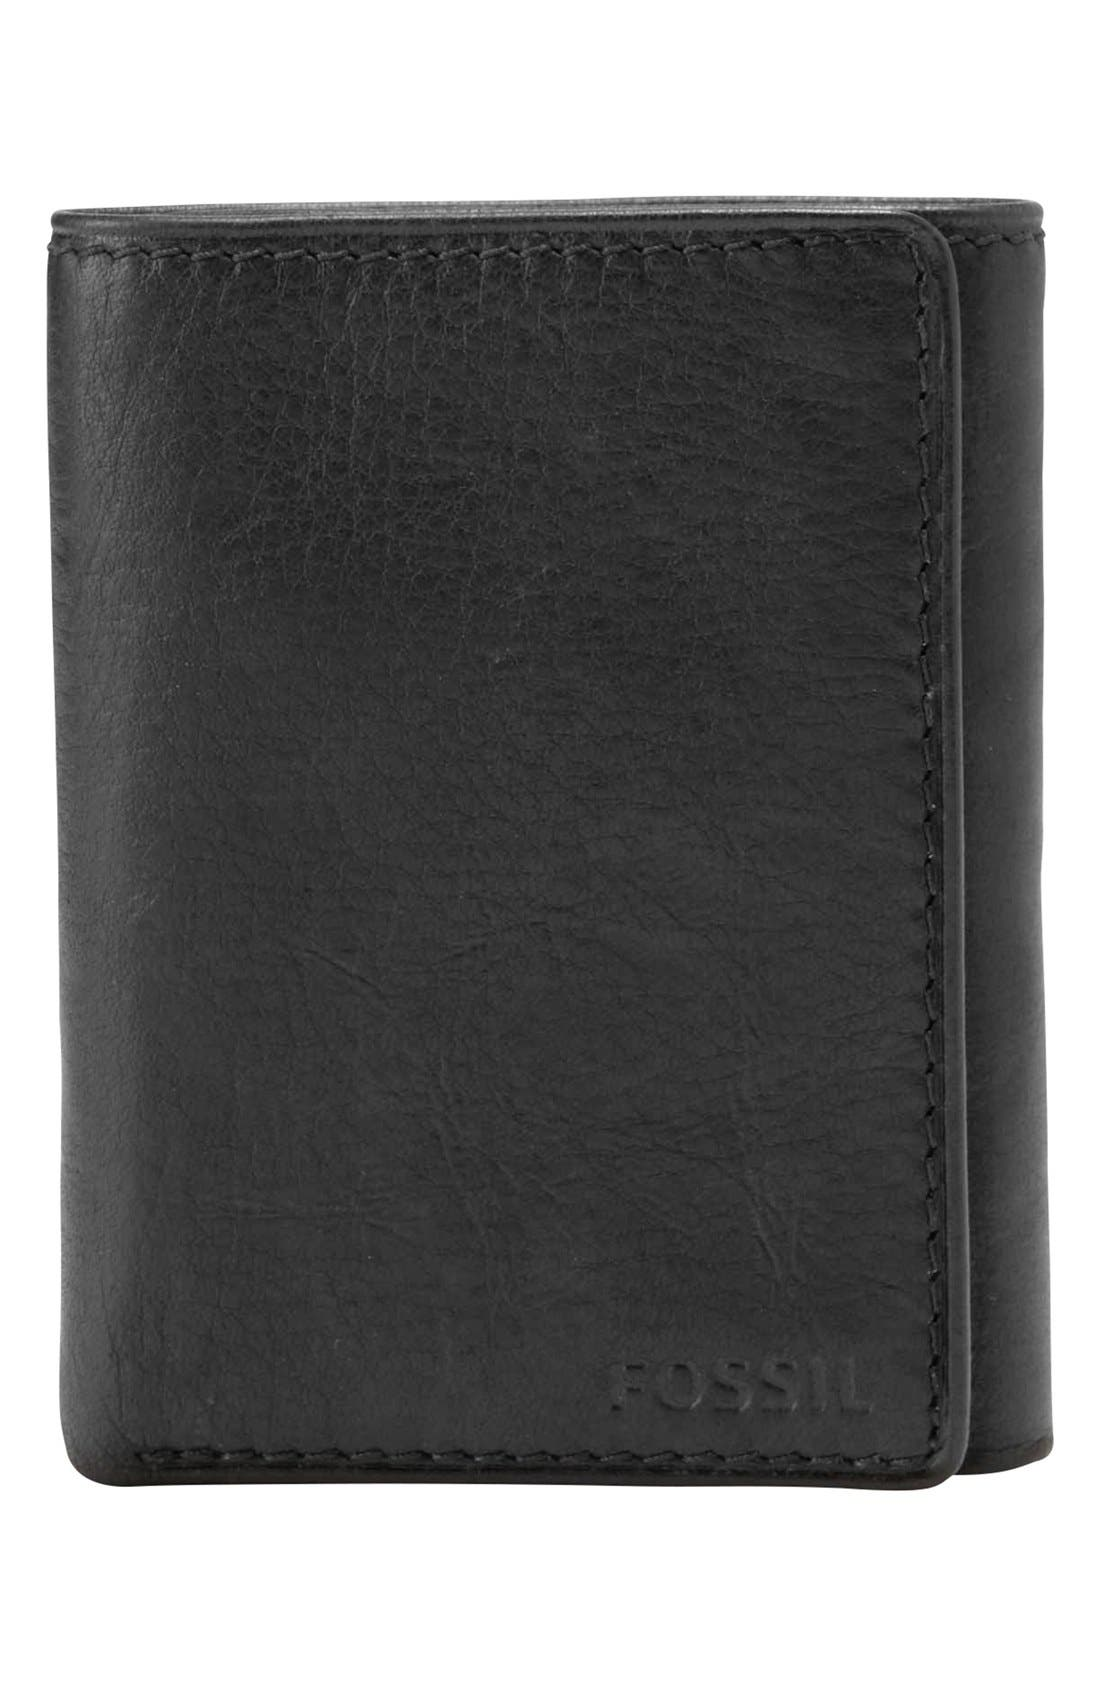 FOSSIL,                             'Ingram' Leather Trifold Wallet,                             Main thumbnail 1, color,                             001